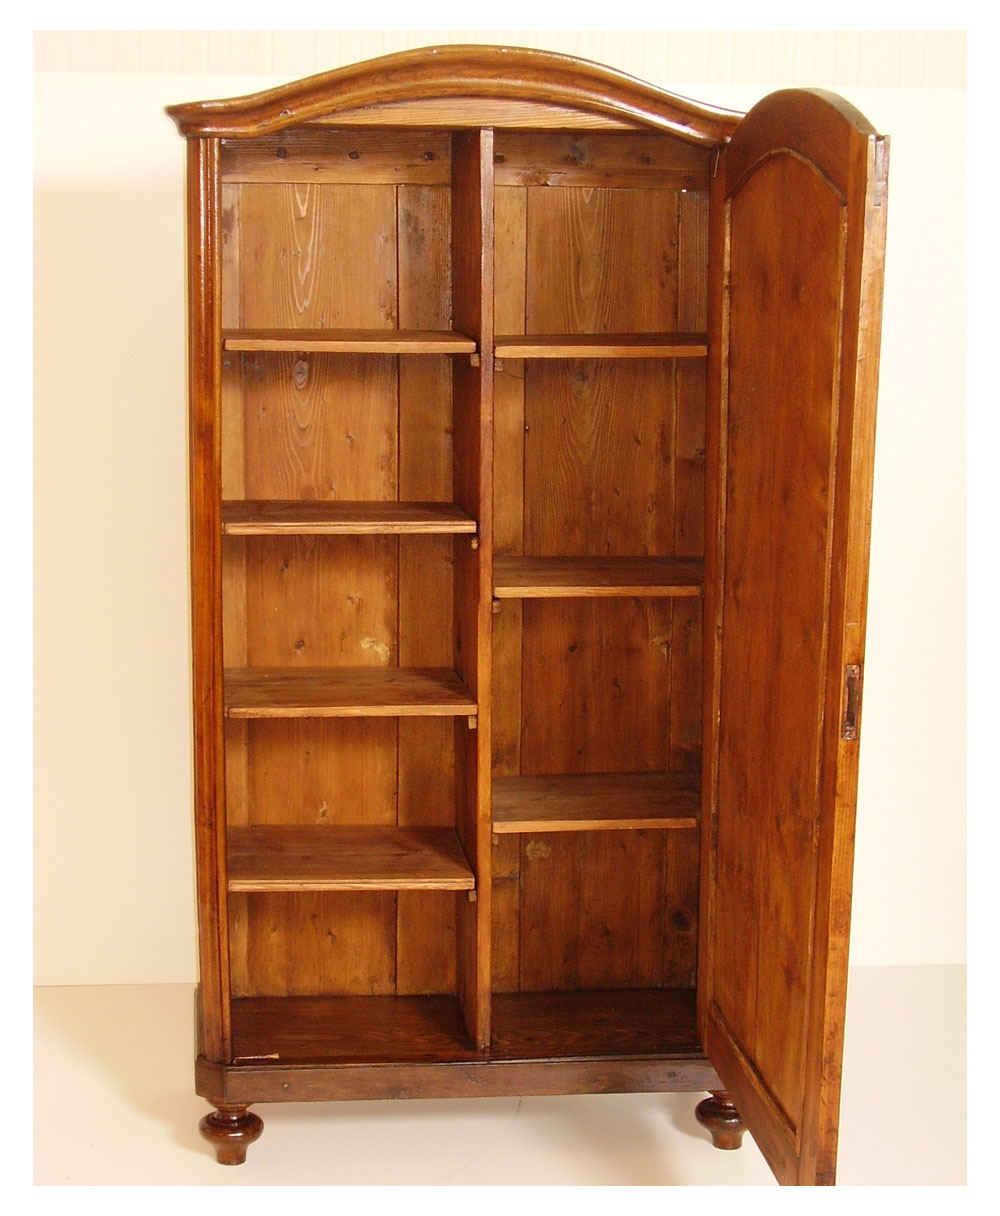 Armadio libreria dispensa 39 800 biedermeier antique cabinet for Armadio antico